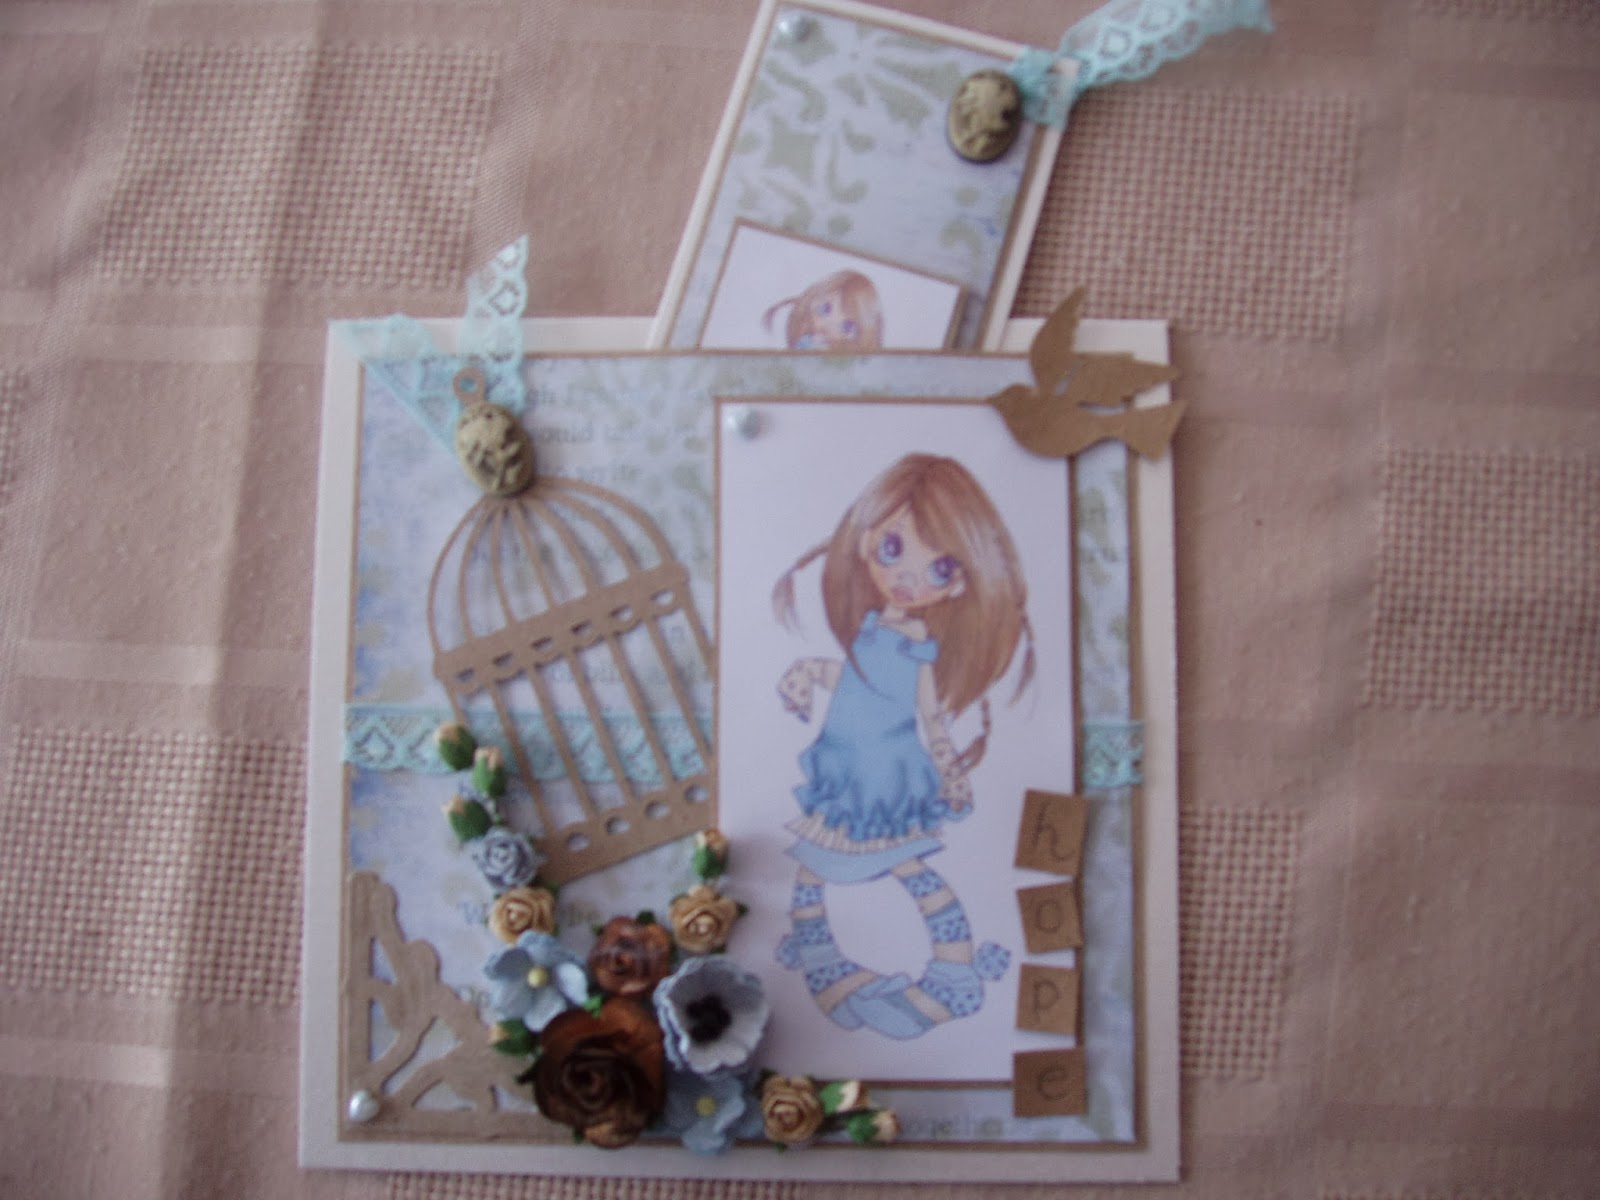 http://flossbites-cardmaking.blogspot.com/2013/03/read-all-about-it.html